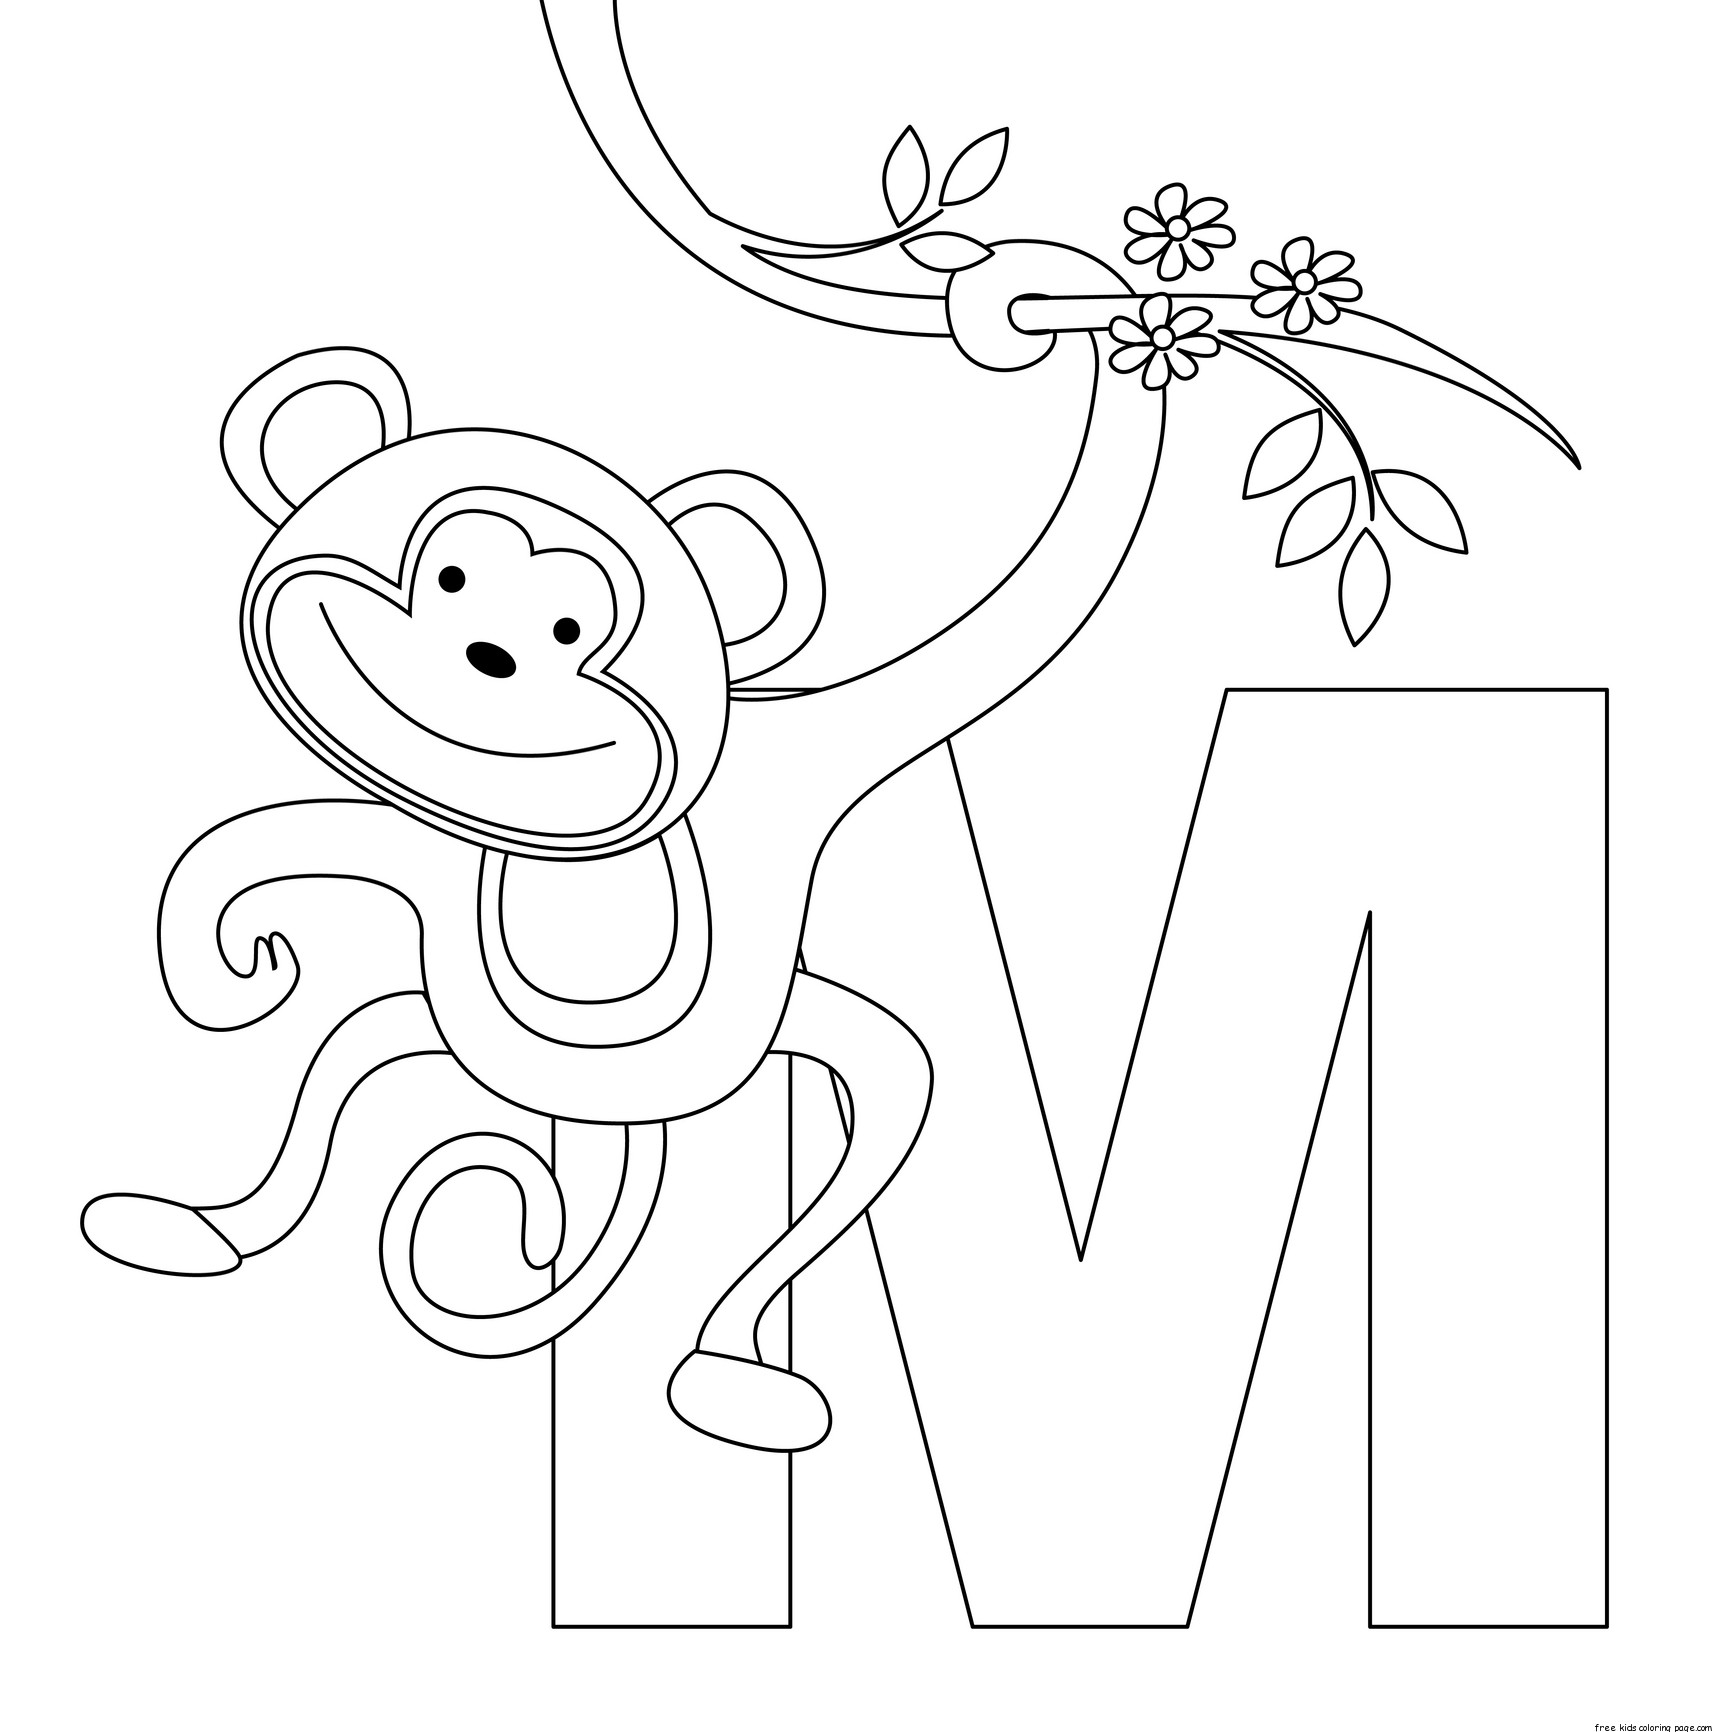 free printable alphabet coloring pages alphabet coloring book printable pdf free kindergarten pages coloring alphabet free printable